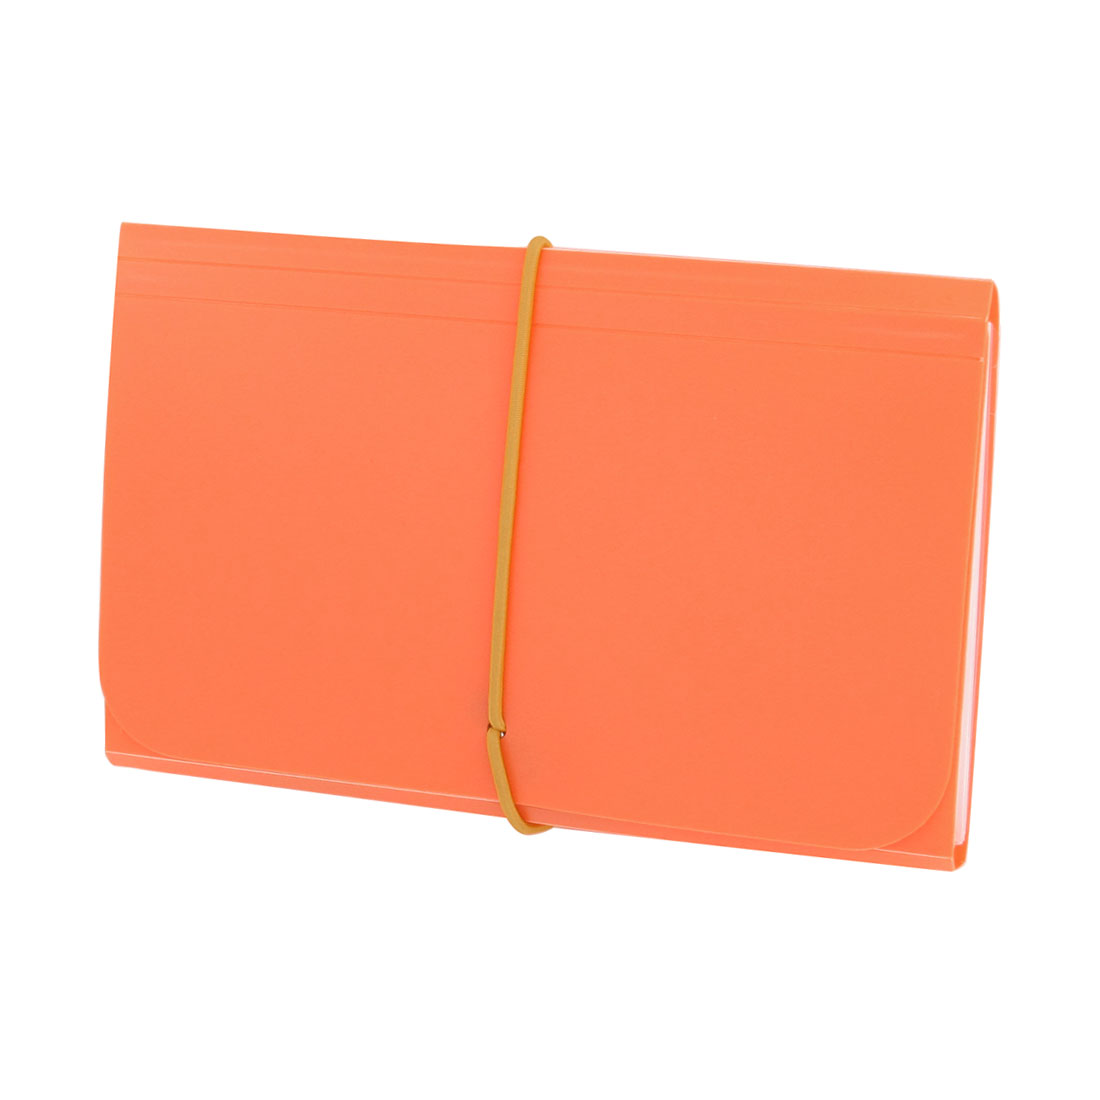 Orange Plastic Cover Elastic Strap 13 Pocket Document File Holder Folder